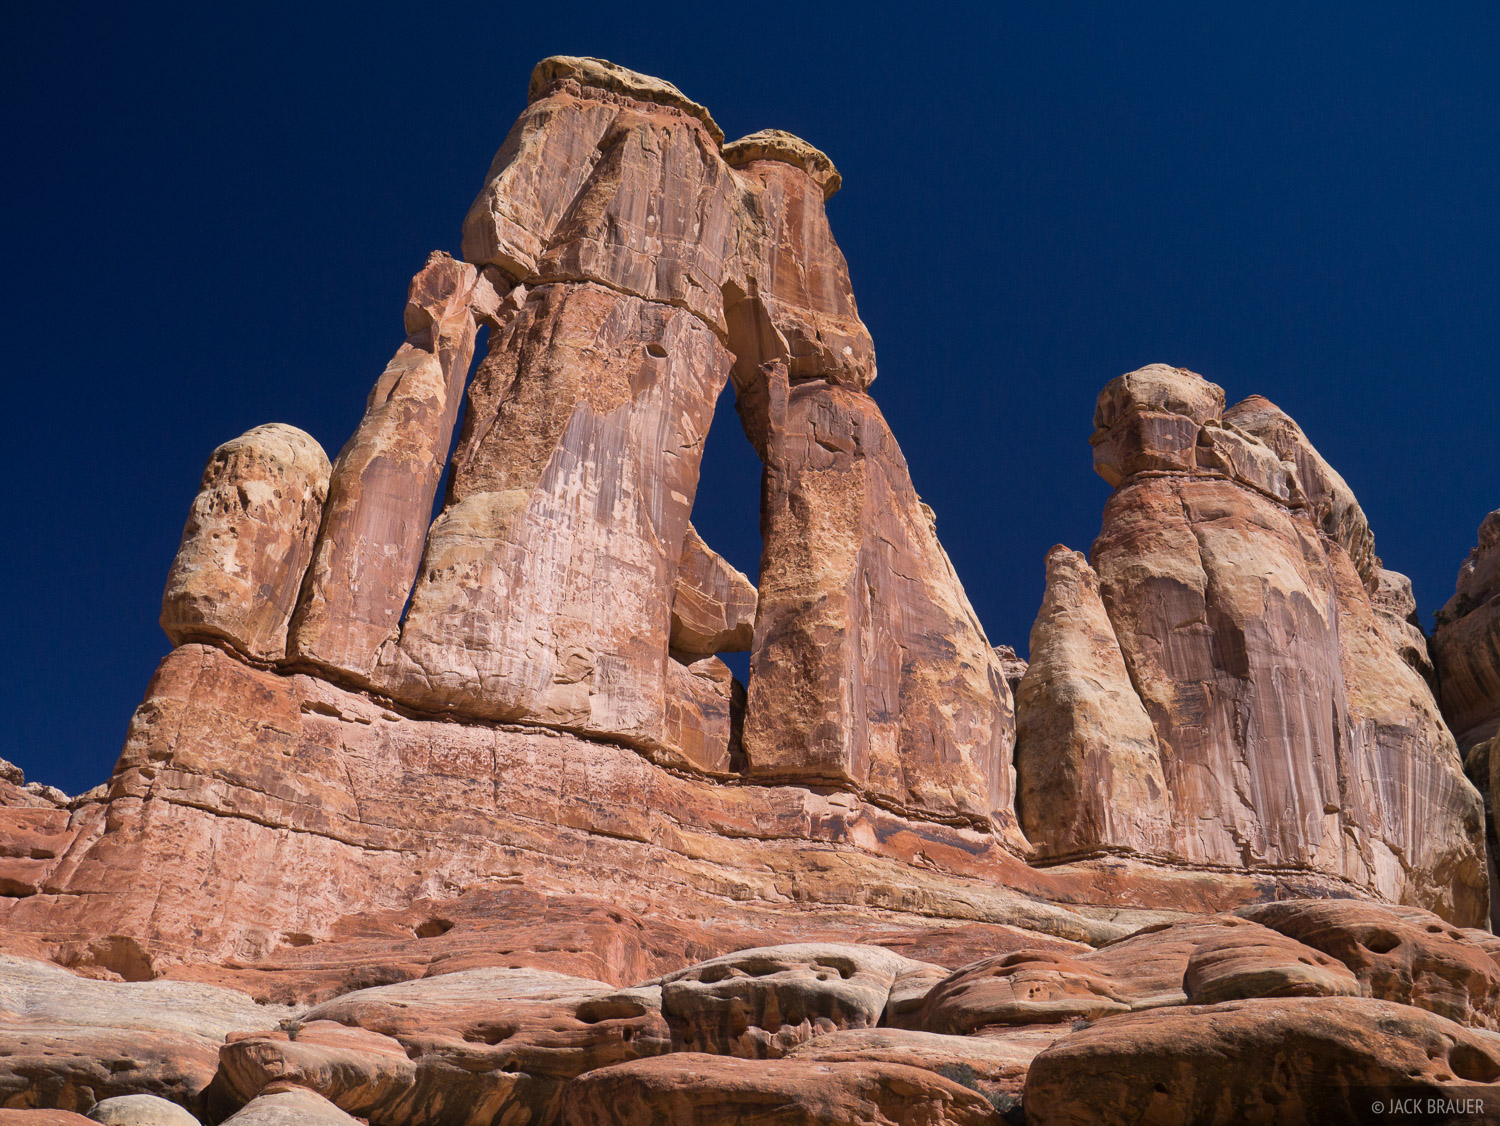 Canyonlands National Park, Utah, Needles District, Druid Arch, photo